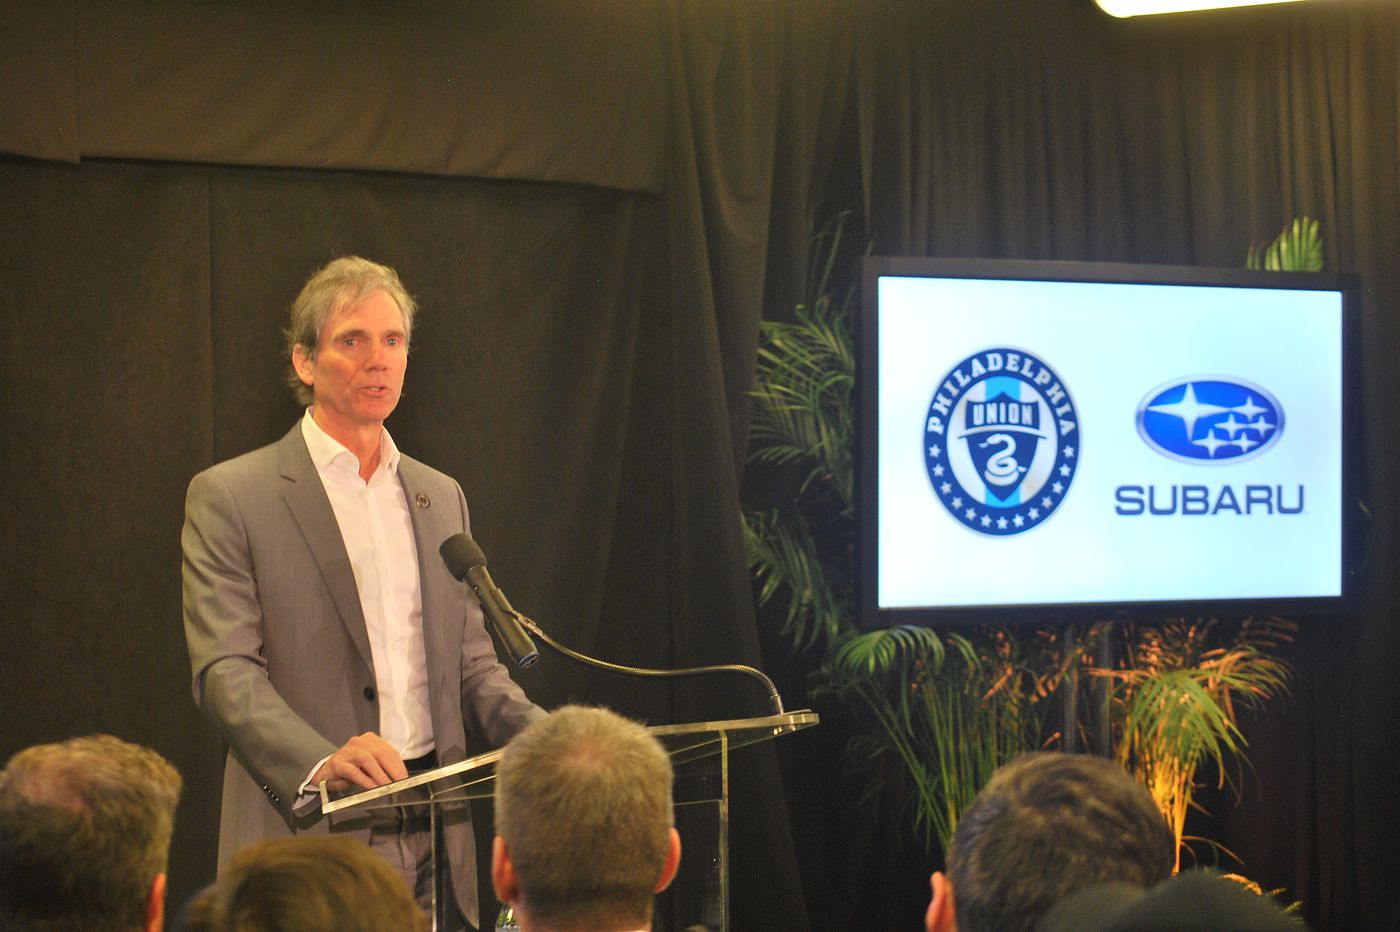 Union's stadium now called Subaru Park with new naming rights deal